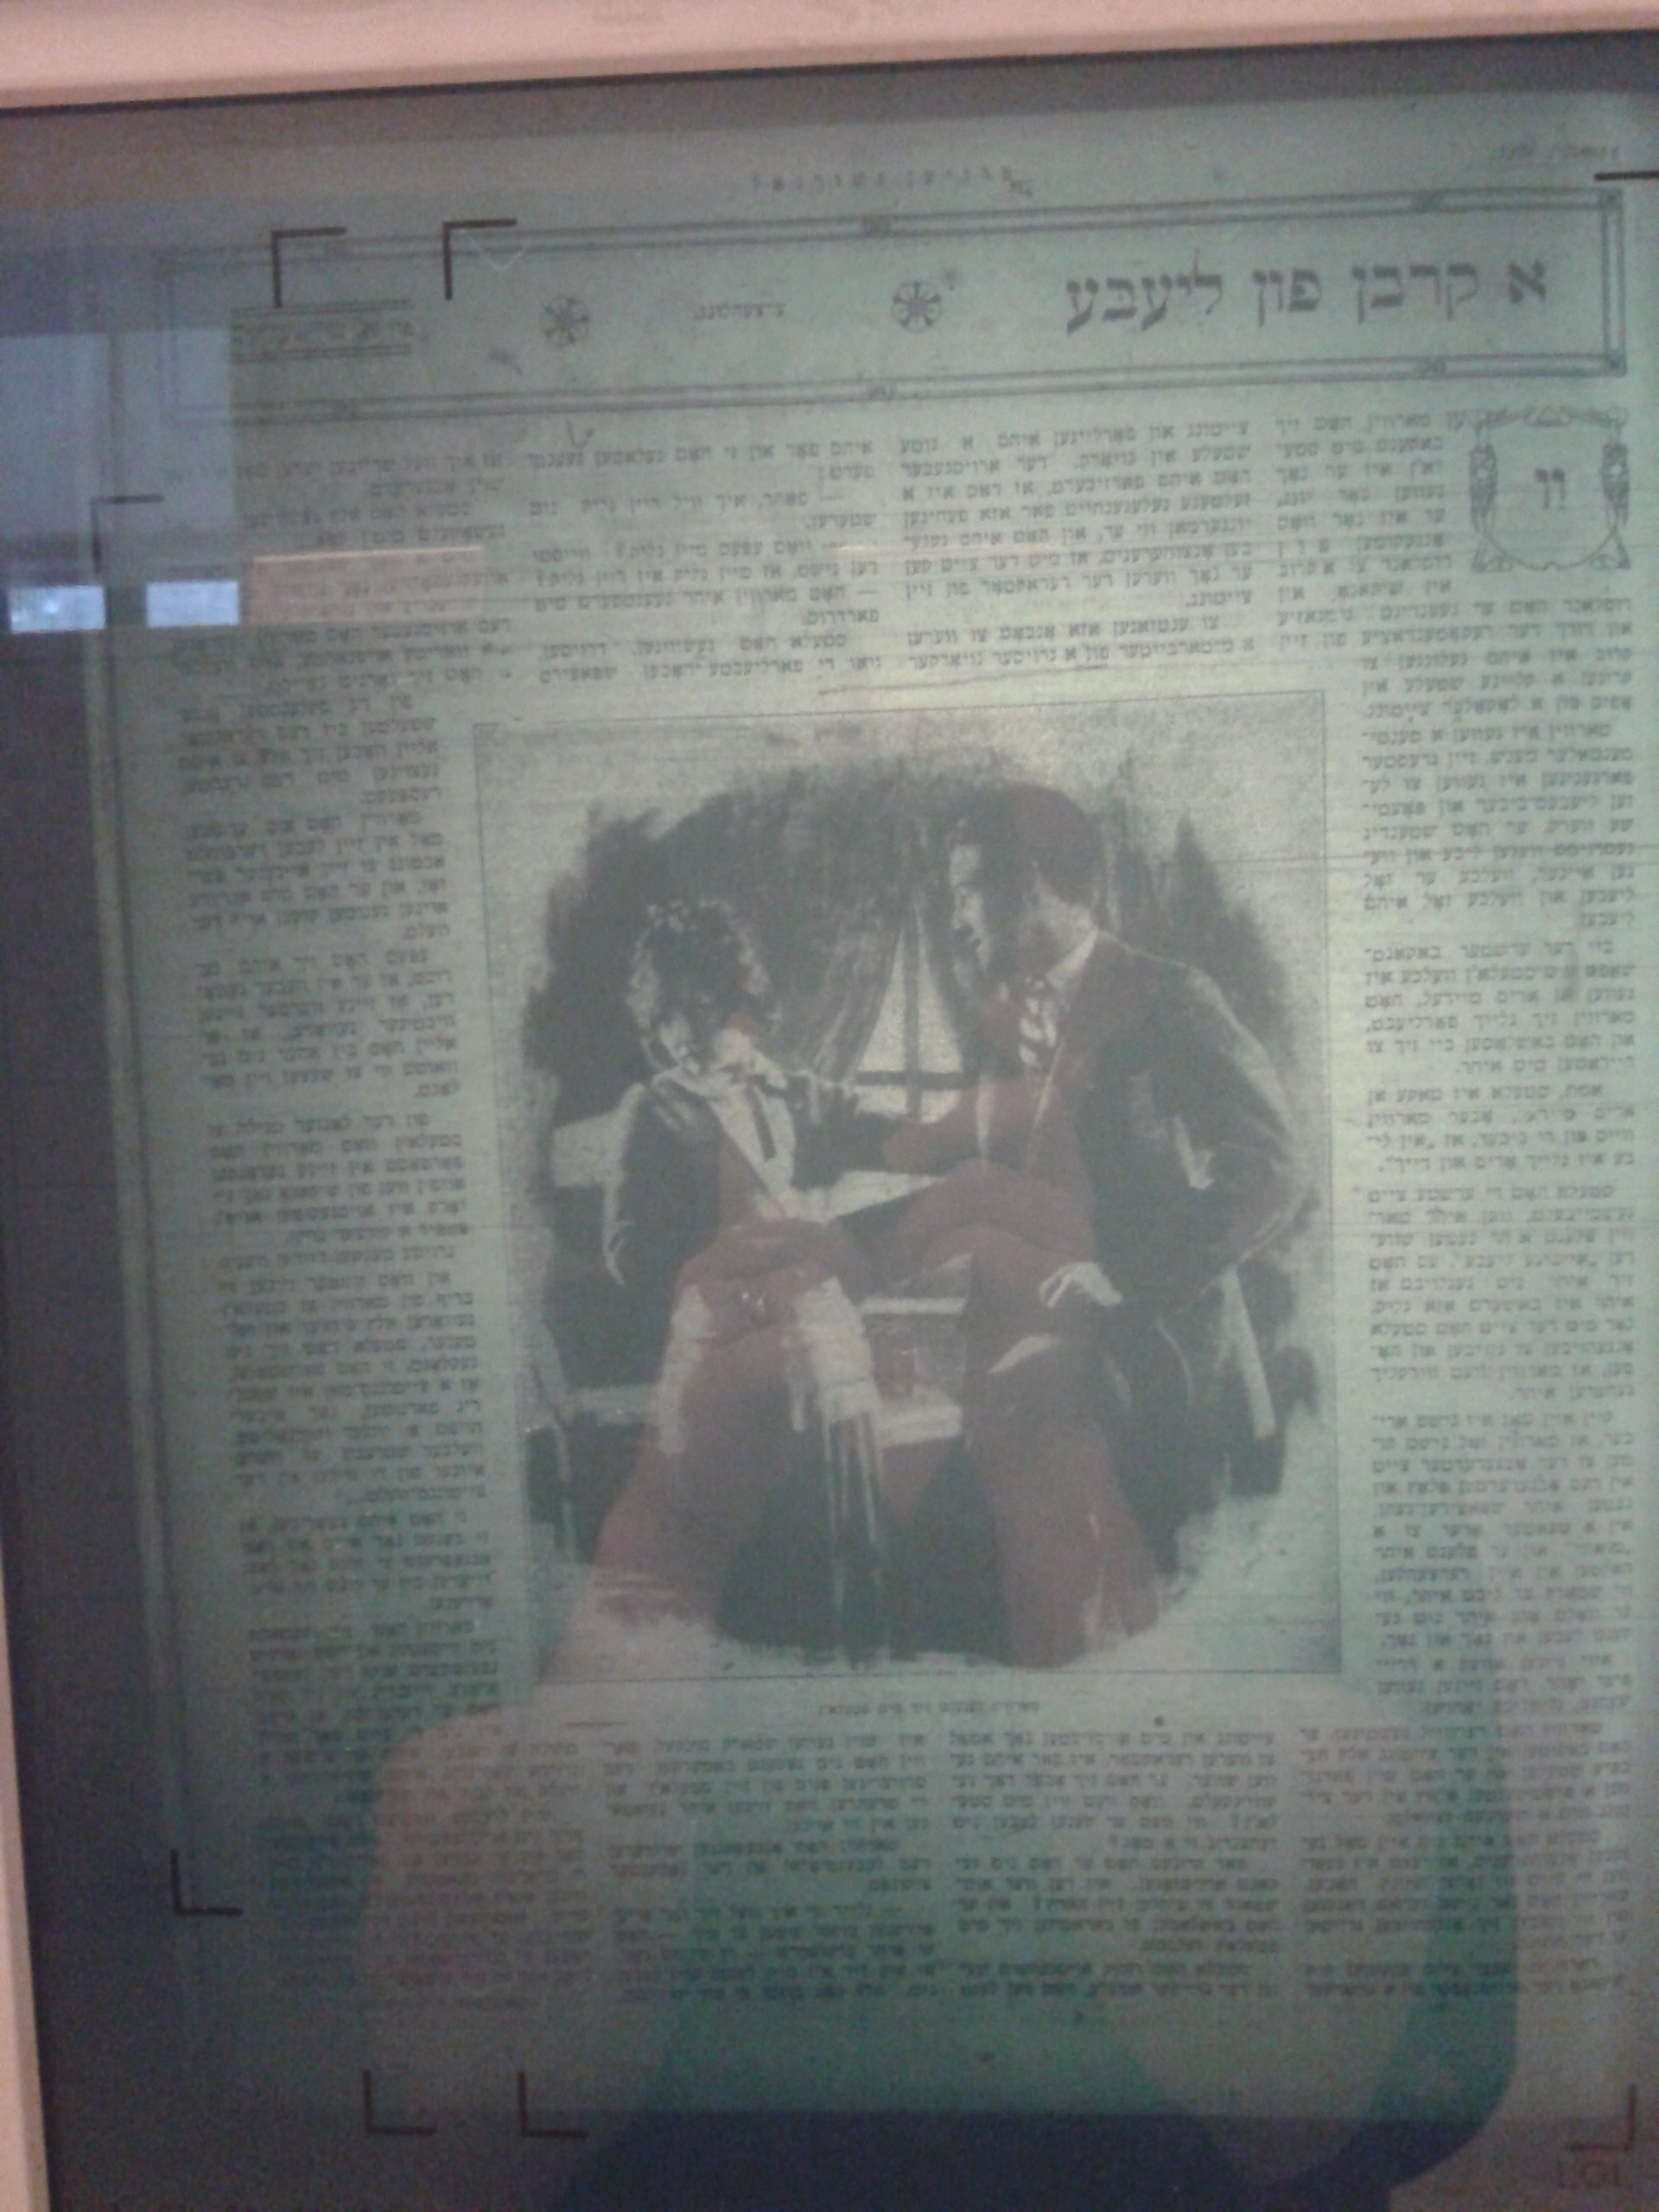 <p>Blurry image of a novel serialized in <em>Froyen Zshurnal</em>, as seen in a microfilm reader, courtesy of Jessica&nbsp;Kirzane.</p>